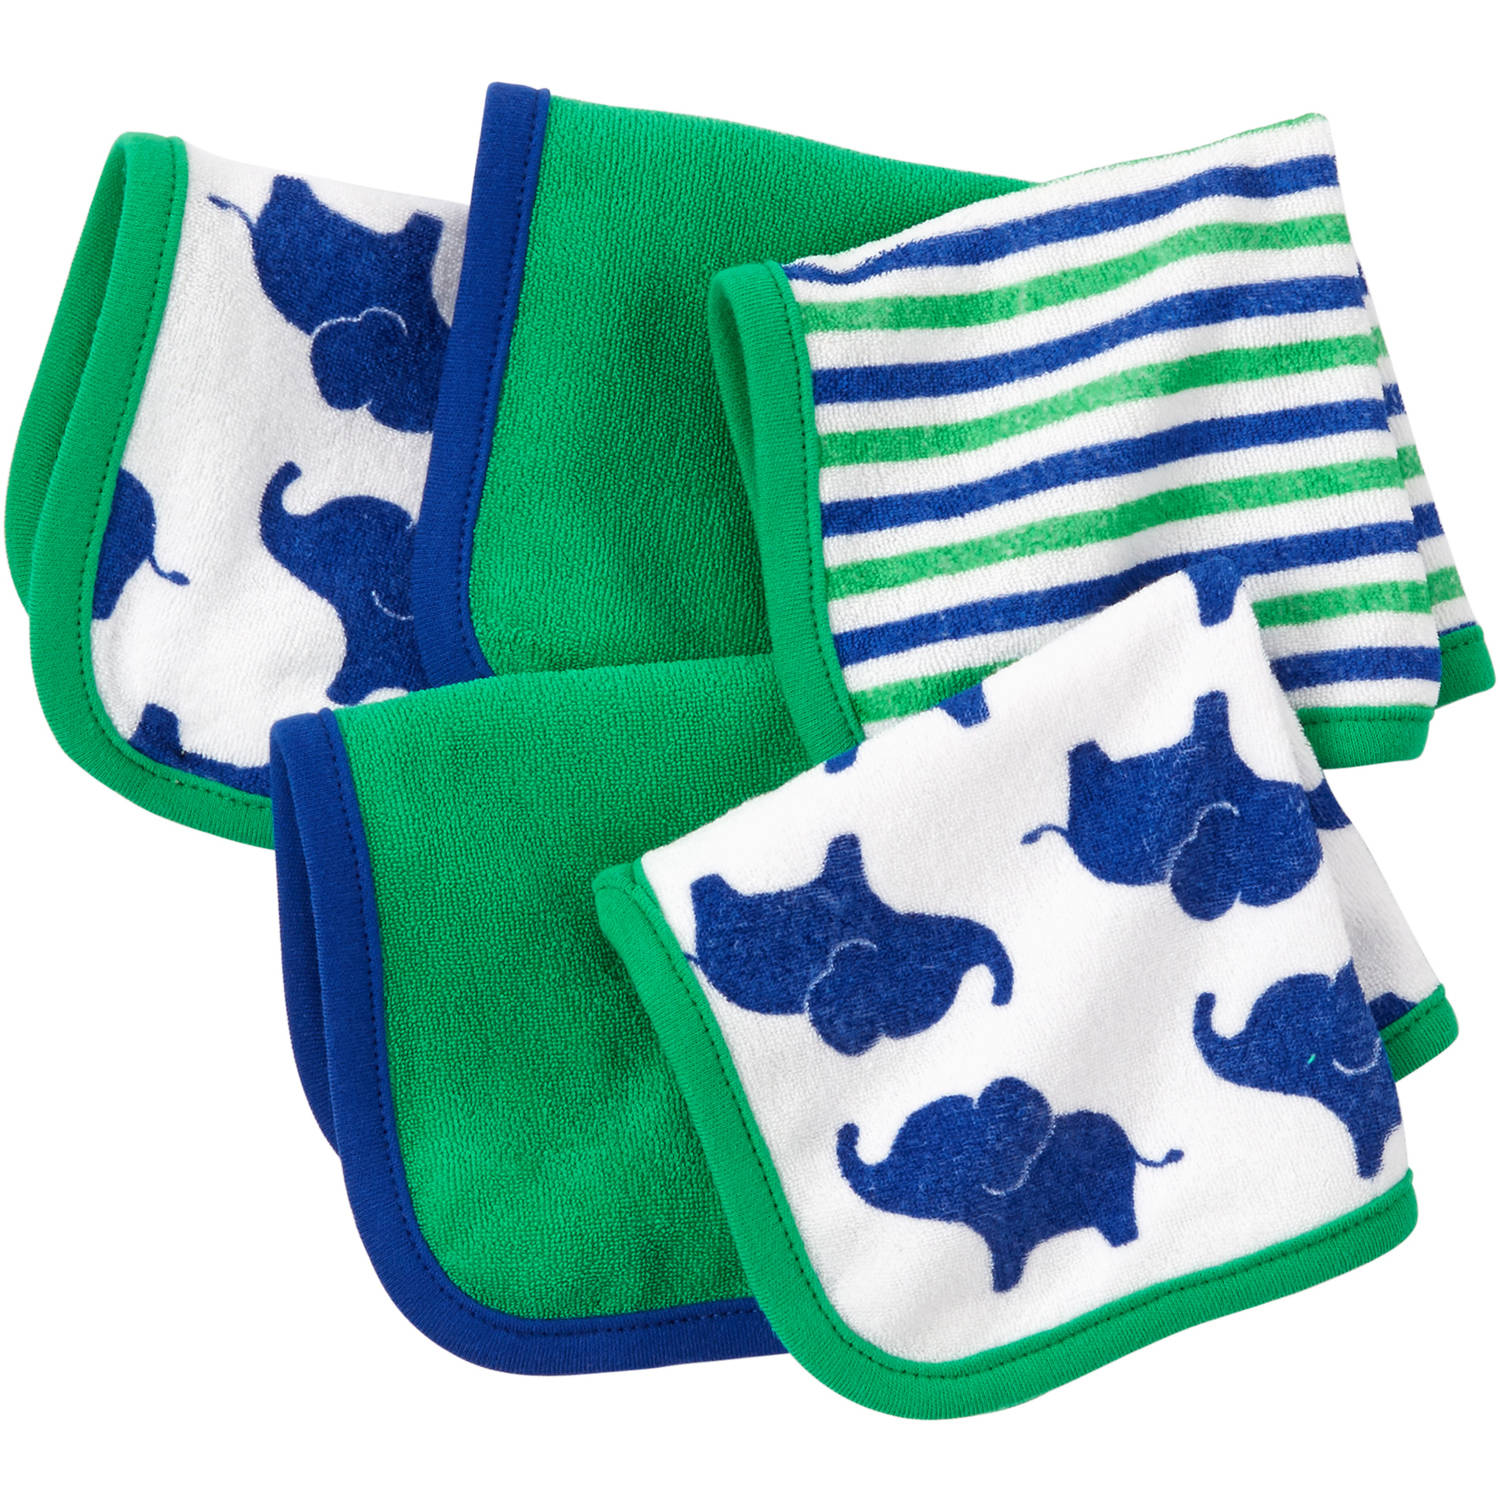 Child of Mine by Carter's Newborn Baby Boy Washcloths, 5 Pack